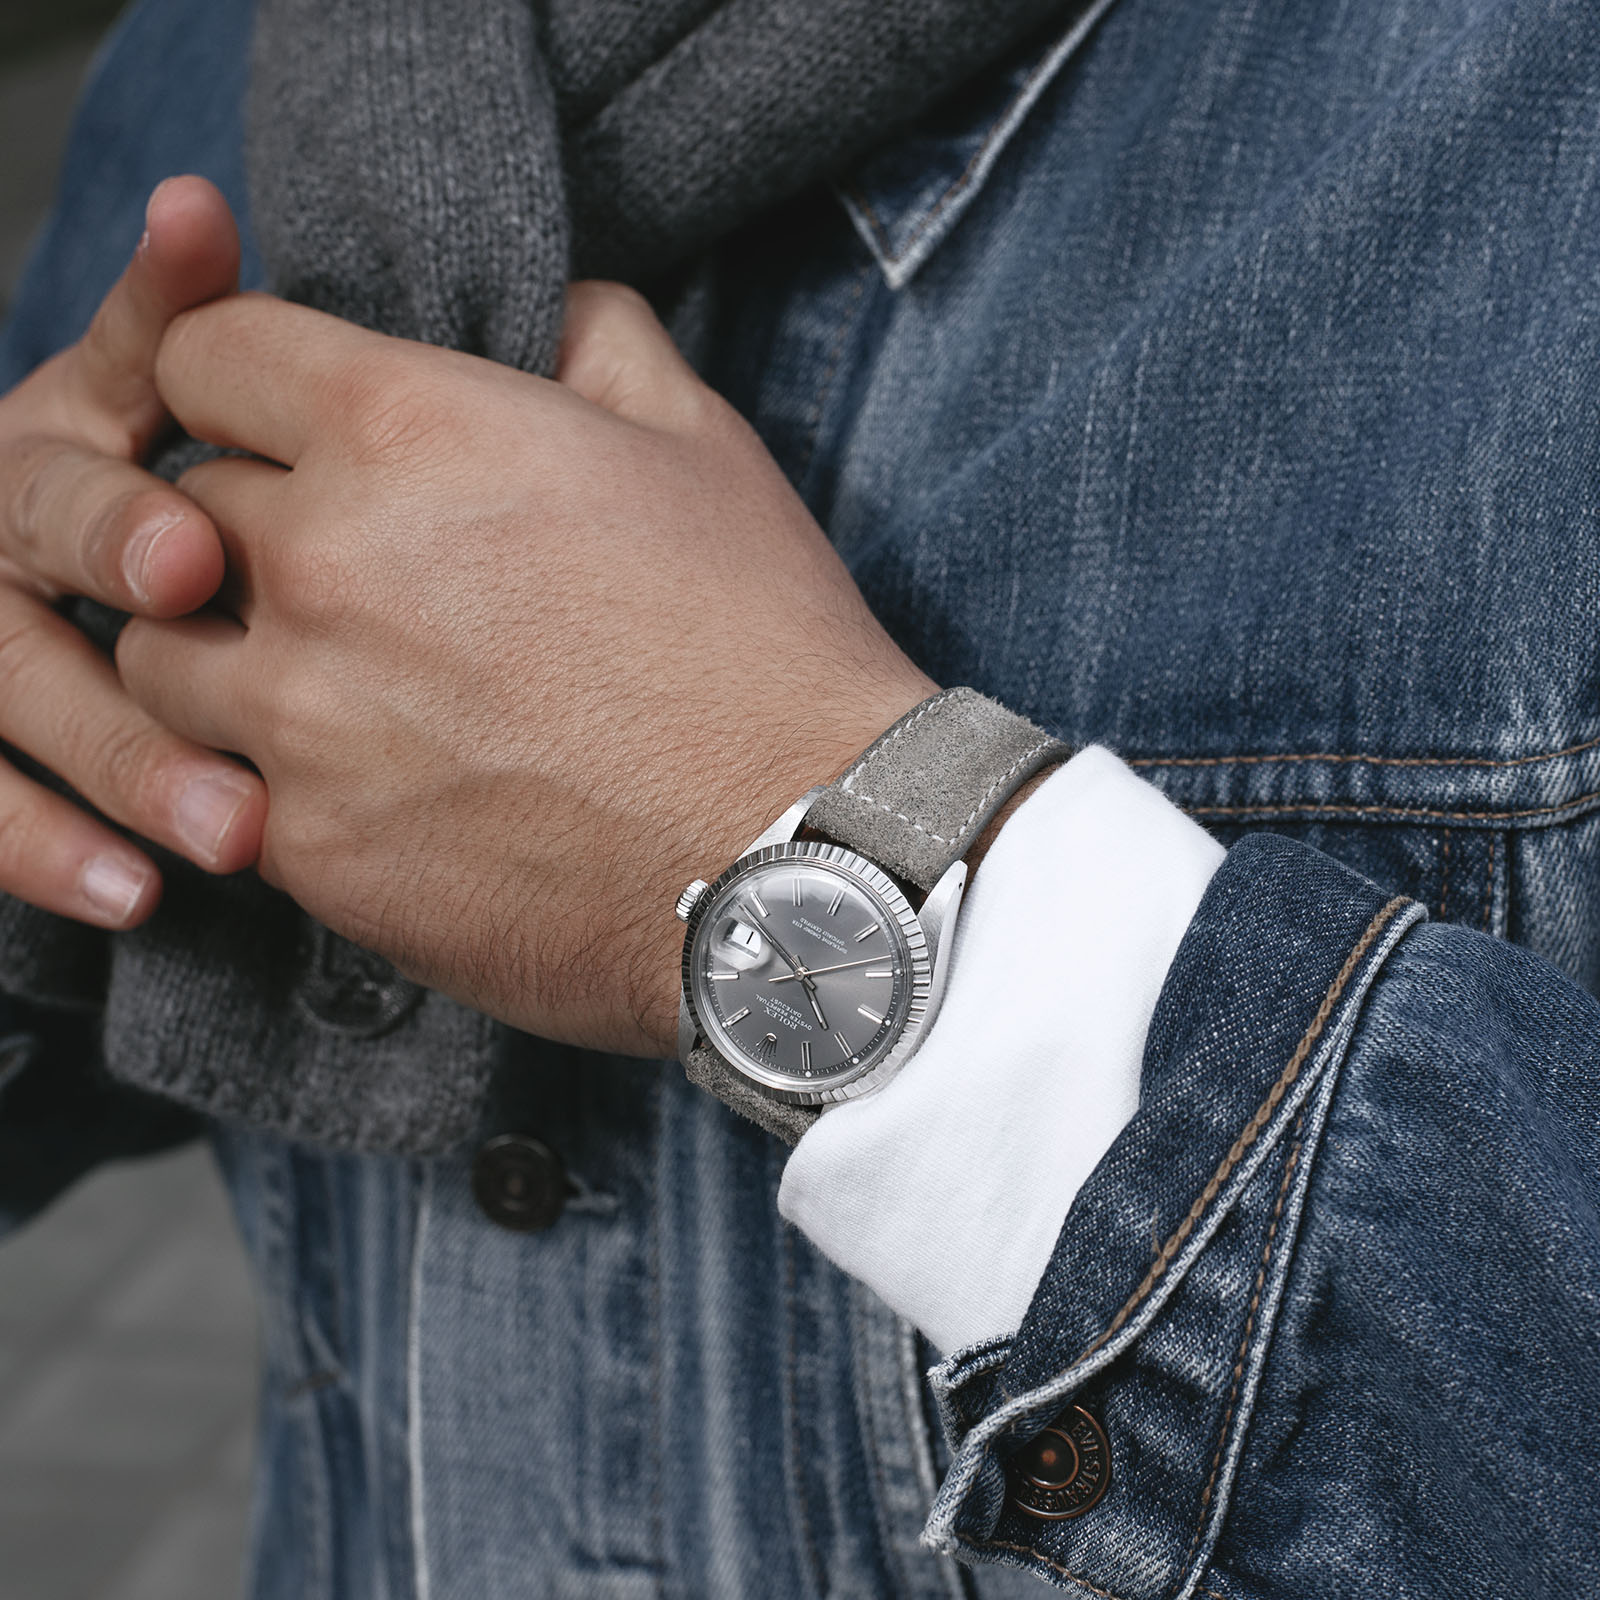 The 9 TO 5 Collection - Authentic Style for your Business and Life, Rolex Datejust on a Bulang and Sons Leather Watch Strap